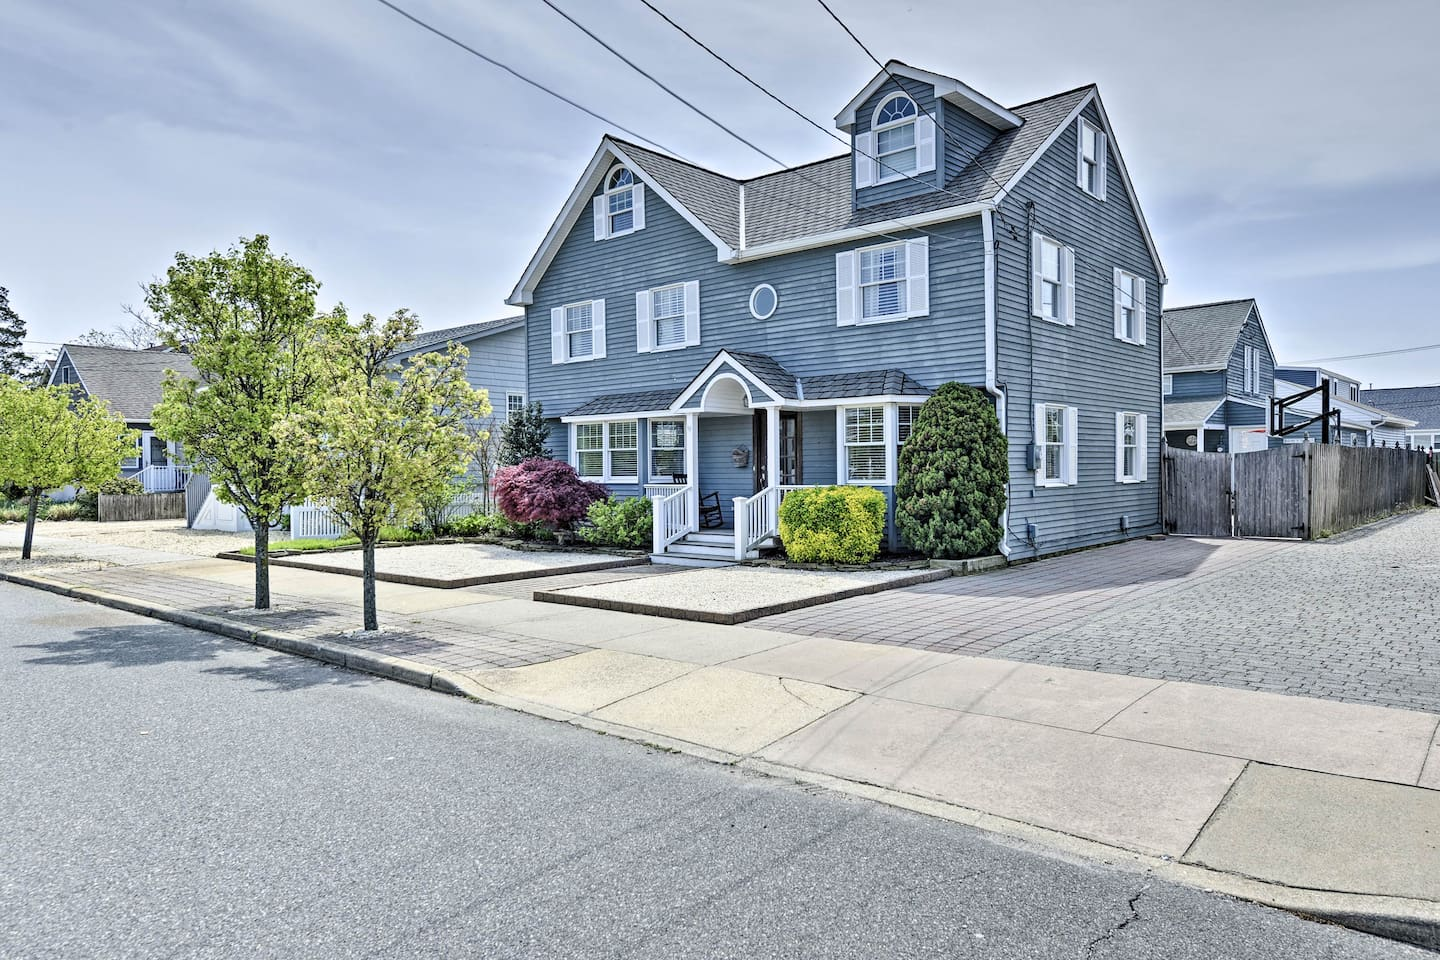 Plan a trip to New Jersey and make this property your home-away-from-home.